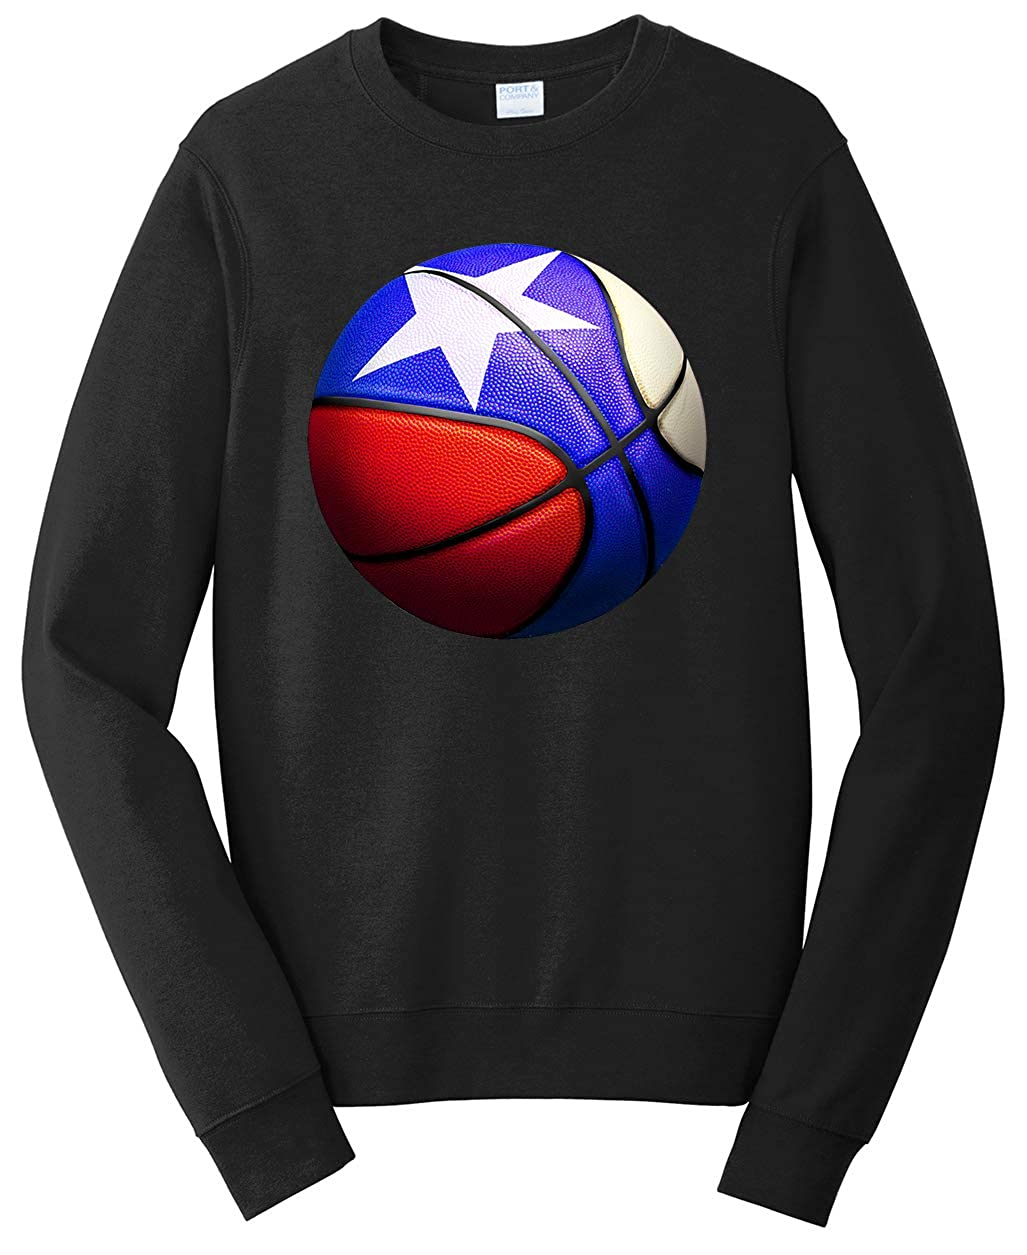 Tenacitee Unisex Texas Basketball Sweatshirt